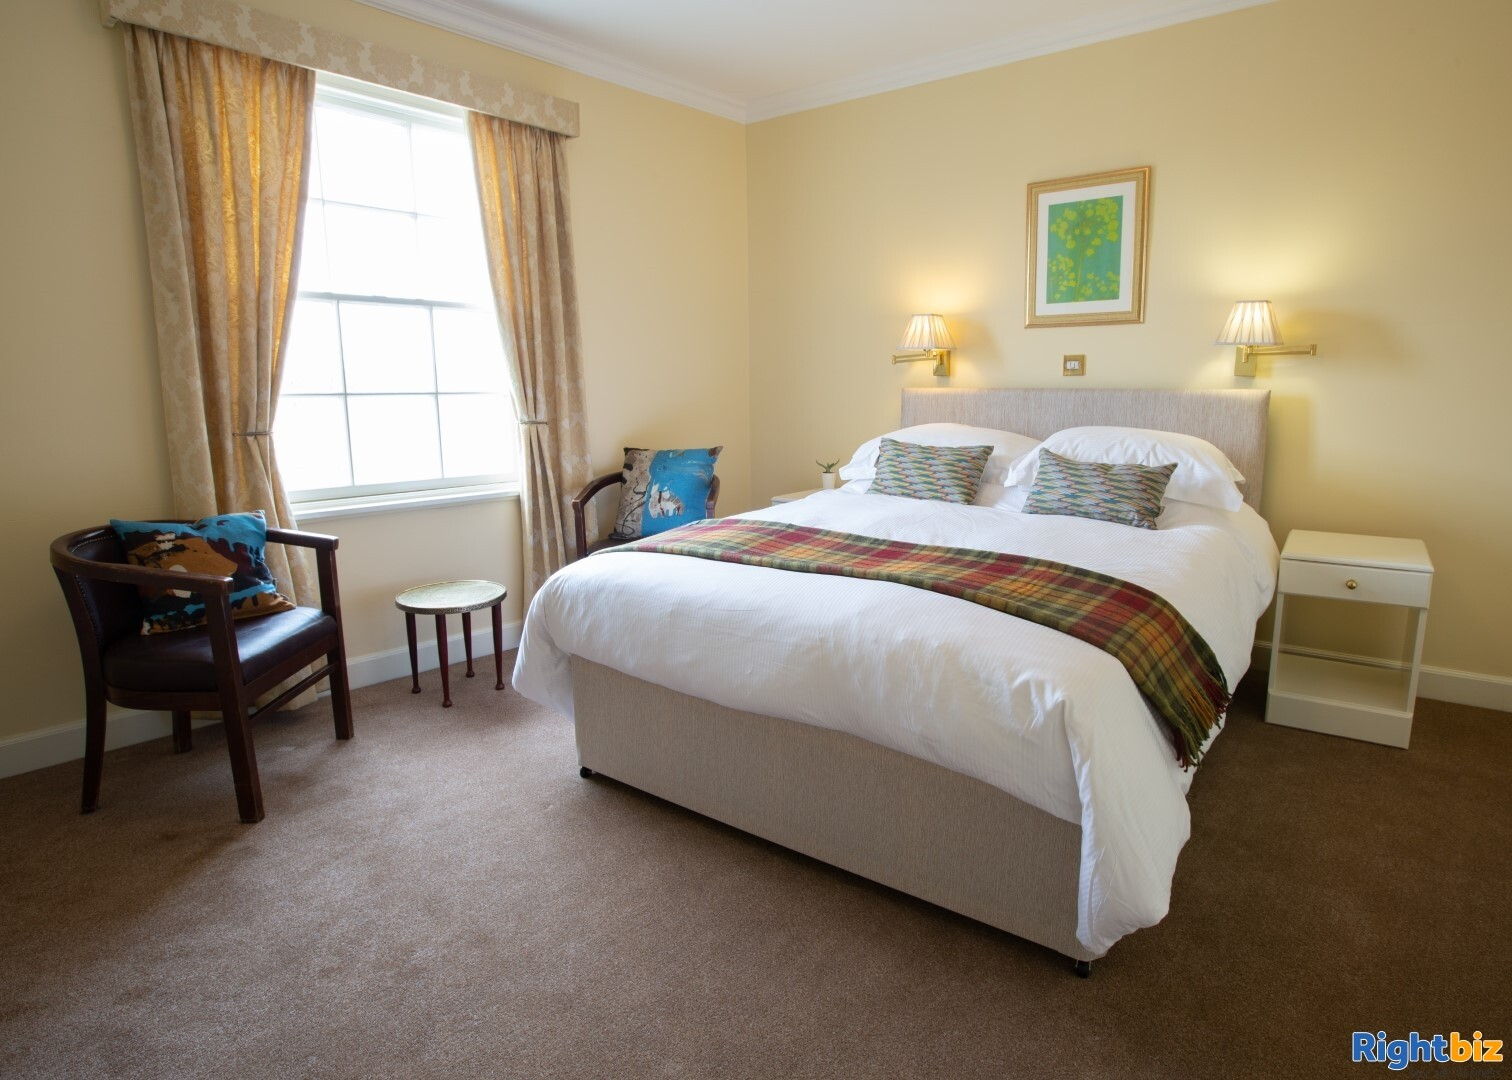 A stunning recently refurbished small Hotel with Restaurant in Kirkcudbright - Image 9